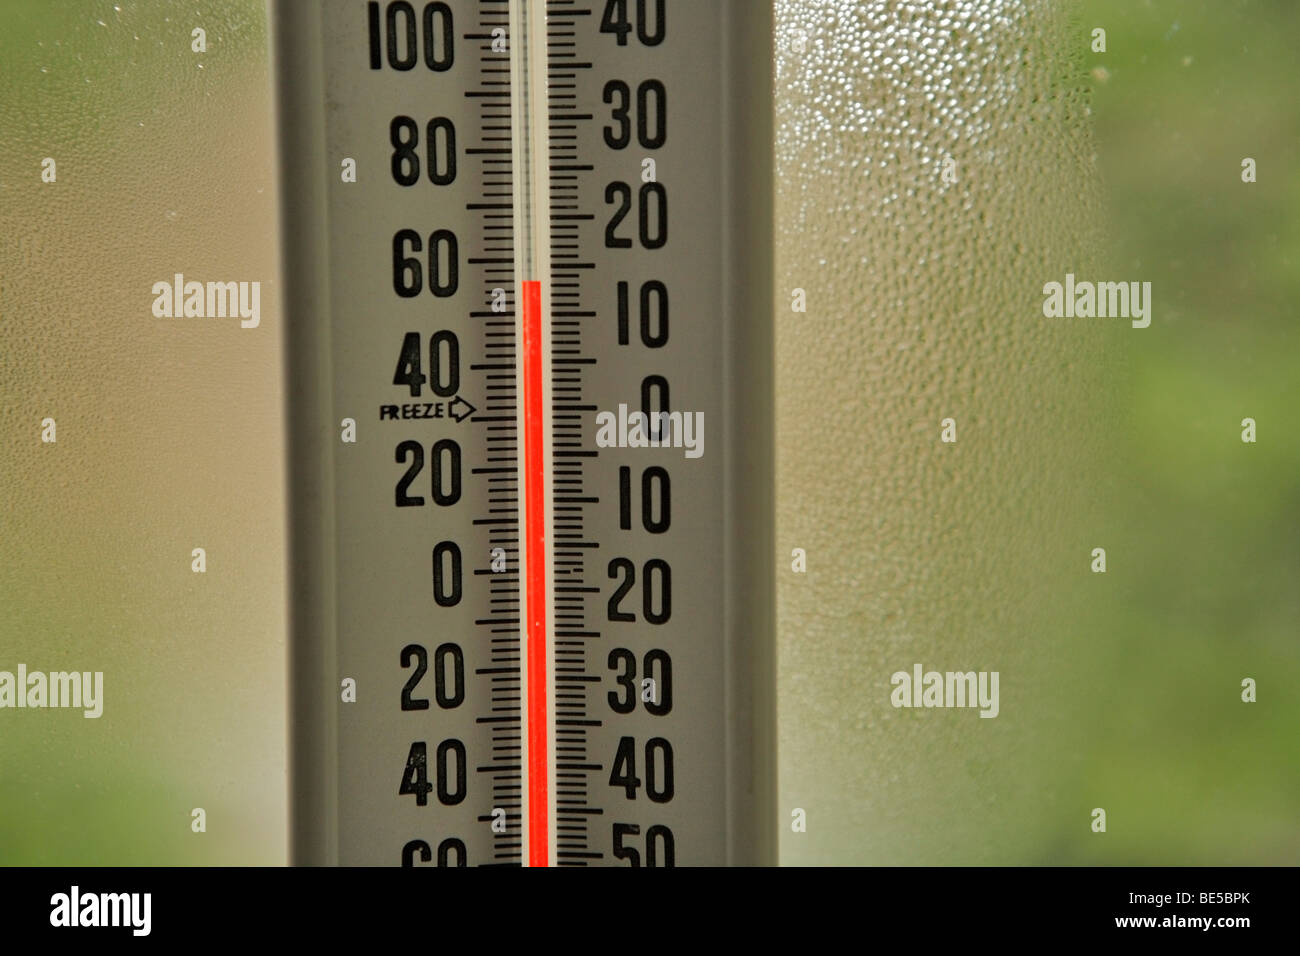 Closeup of thermometer in window-Victoria, British Columbia, Canada. - Stock Image